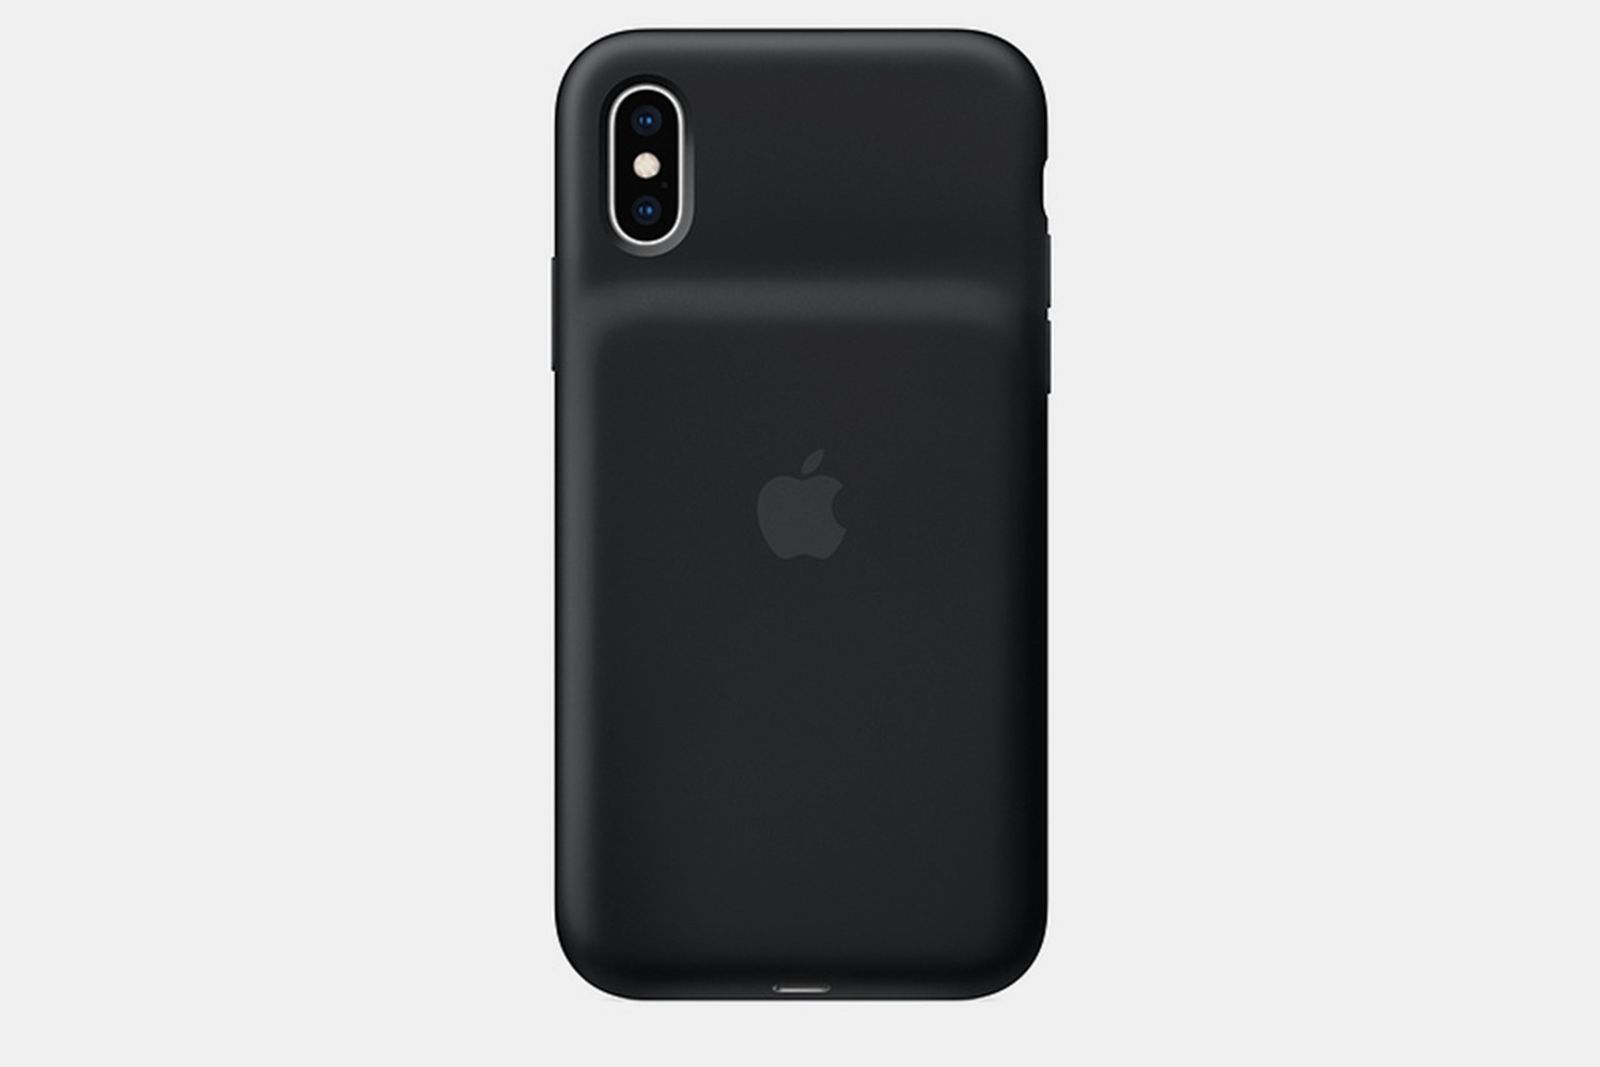 iphone xs max xr smart battery case apple iPhone XR